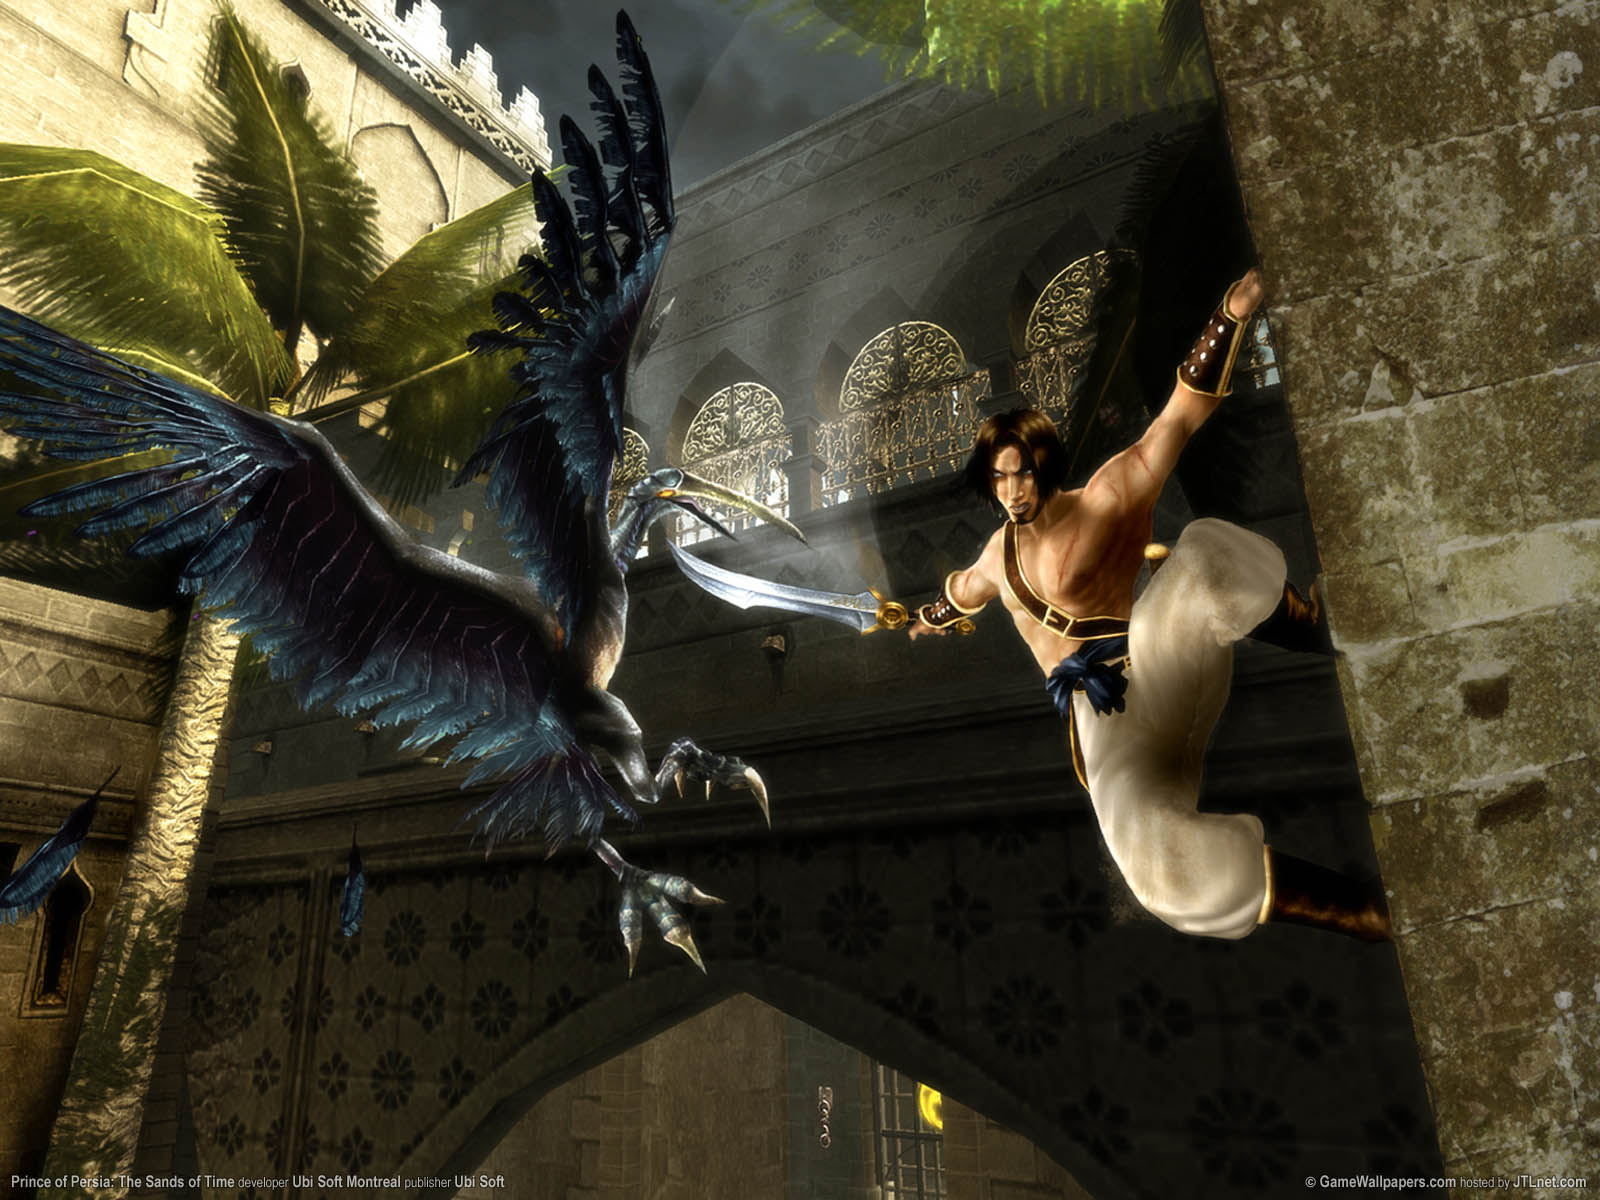 Prince of Persia: The Sands of Time Hintergrundbild 02 1600x1200